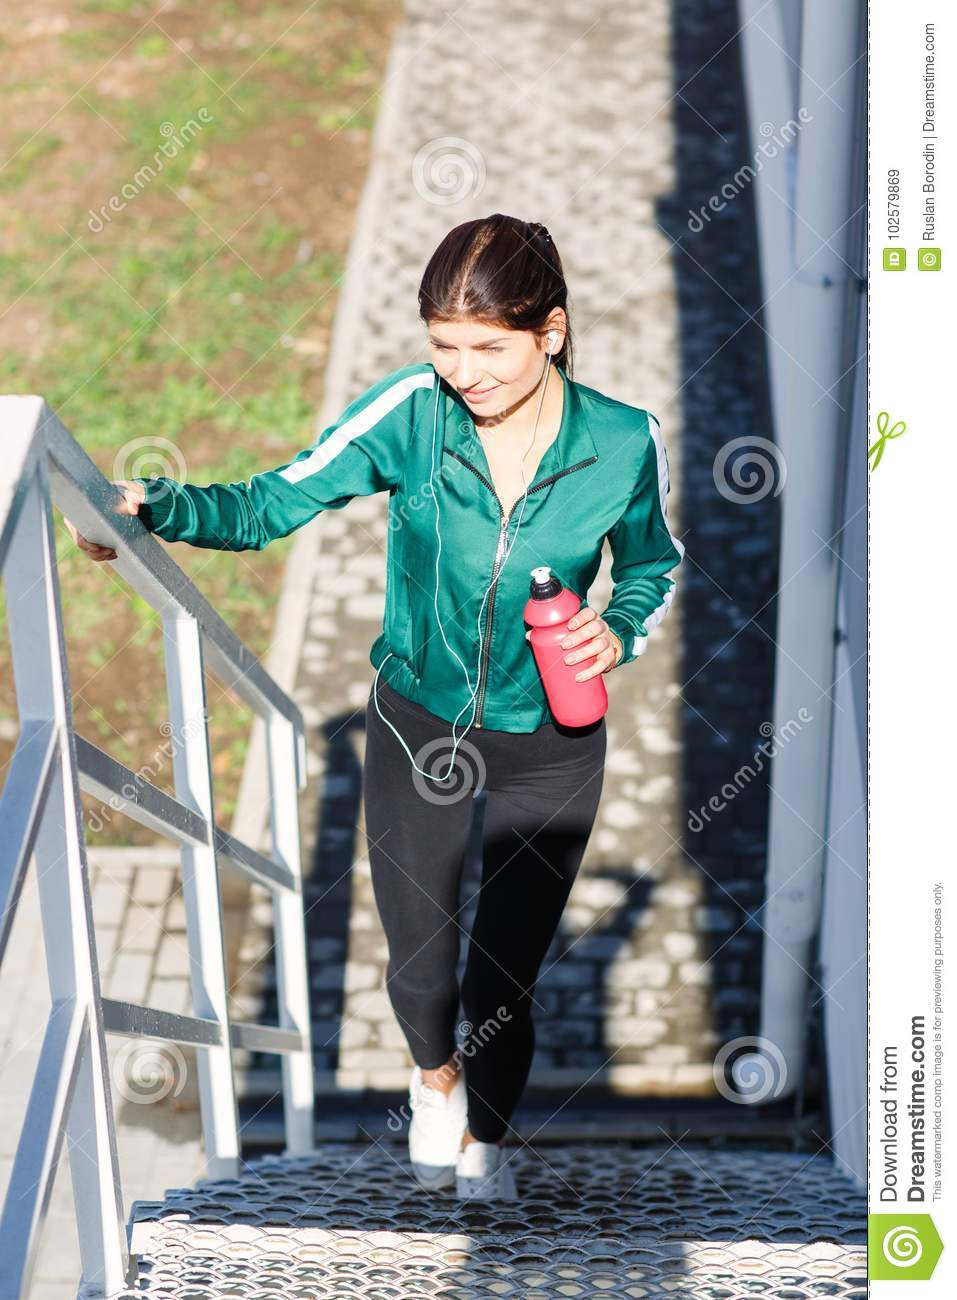 A young sporty woman with perfect body doing exercises on stairs outdoor.